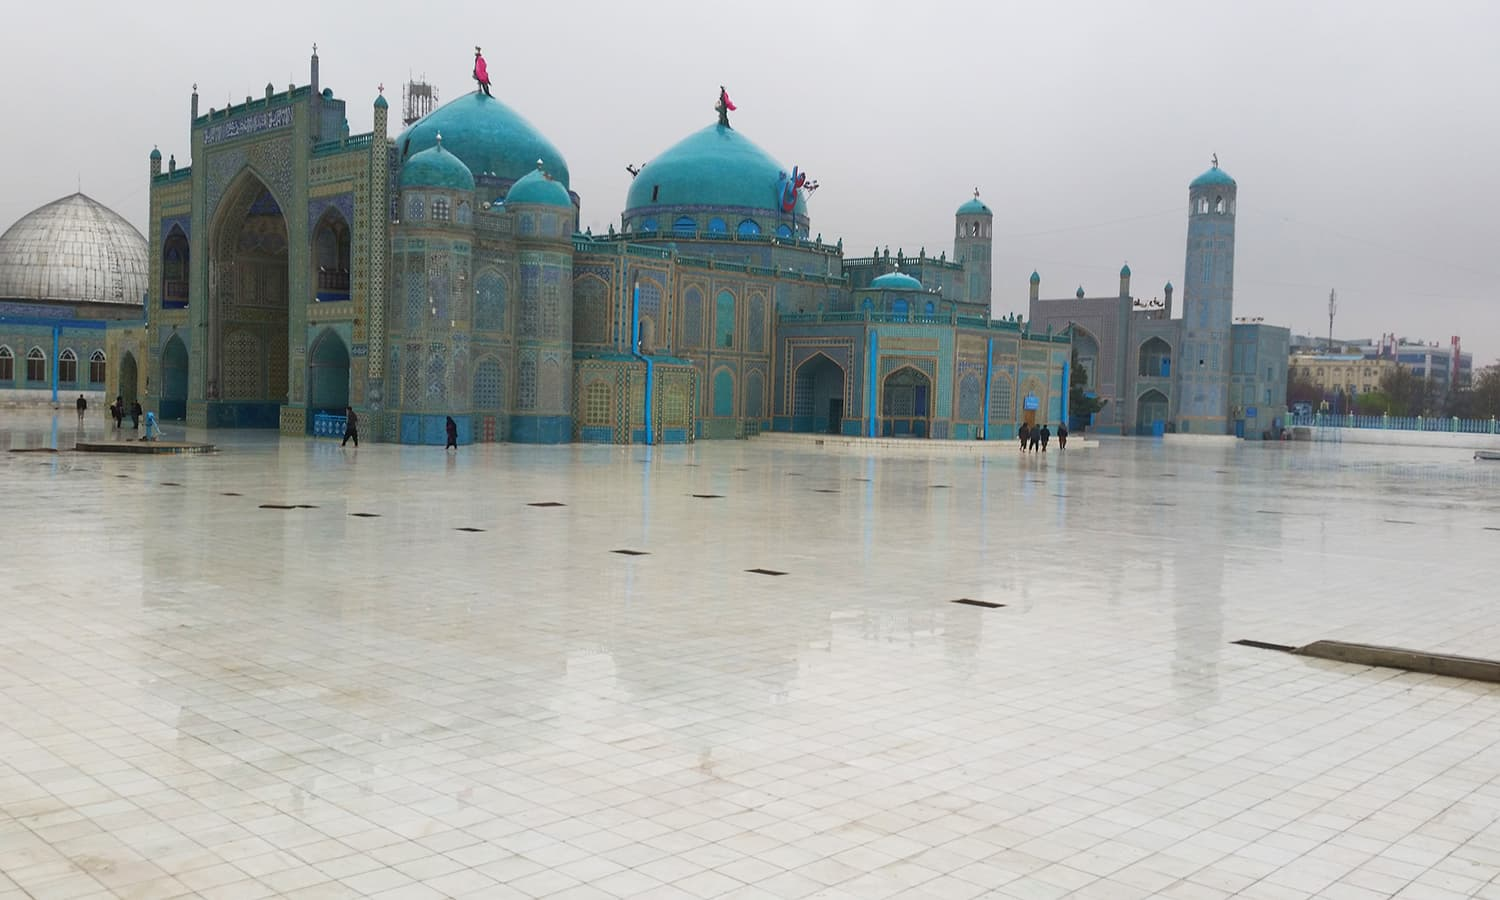 The Blue Mosque in Mazar-e-Sharif.